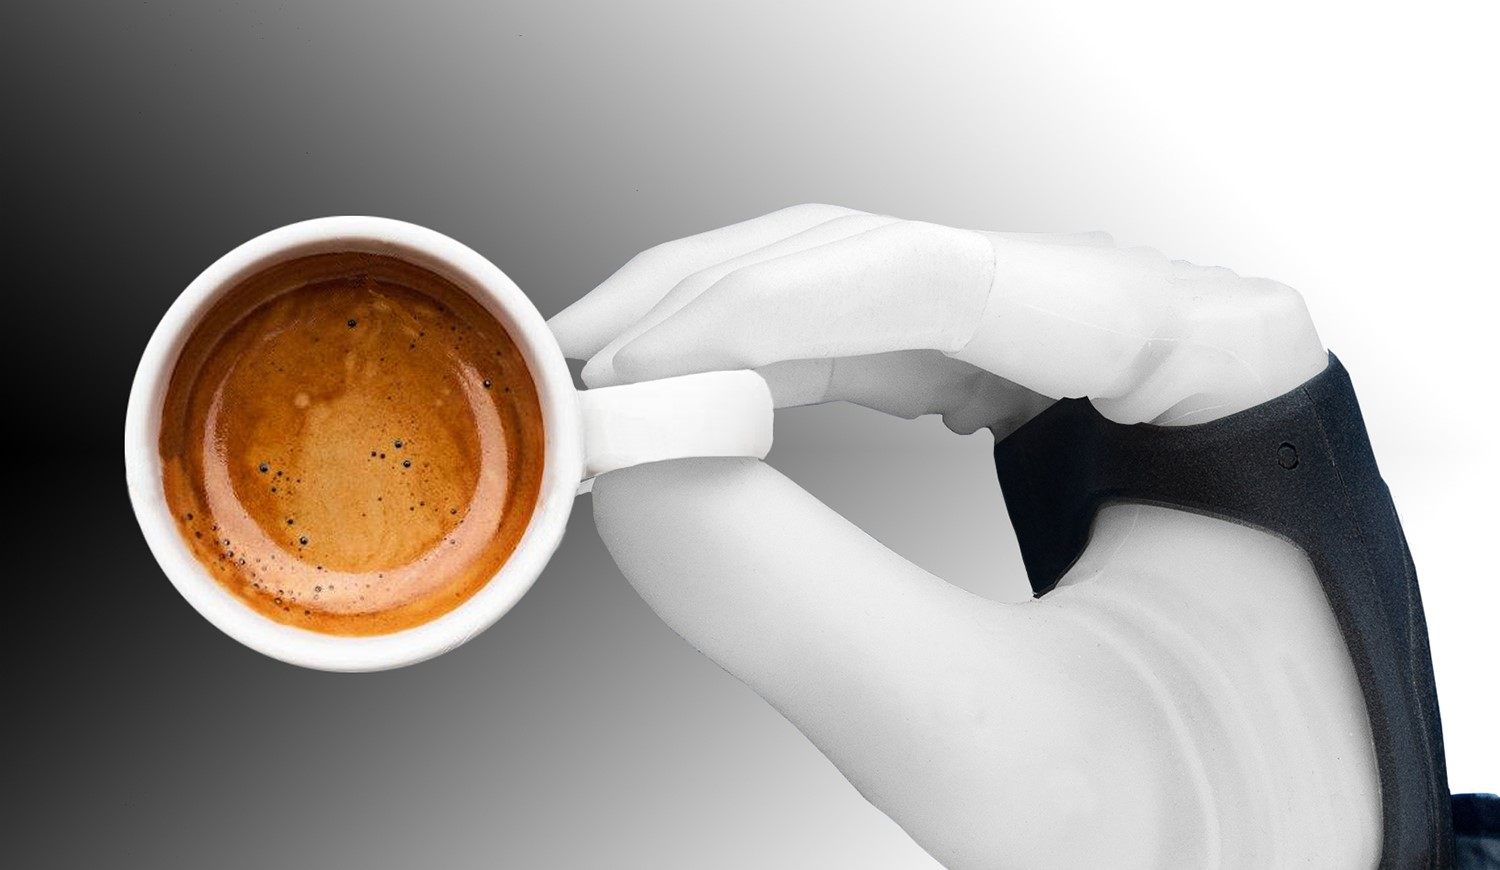 Robotic hand grasping an espresso cup